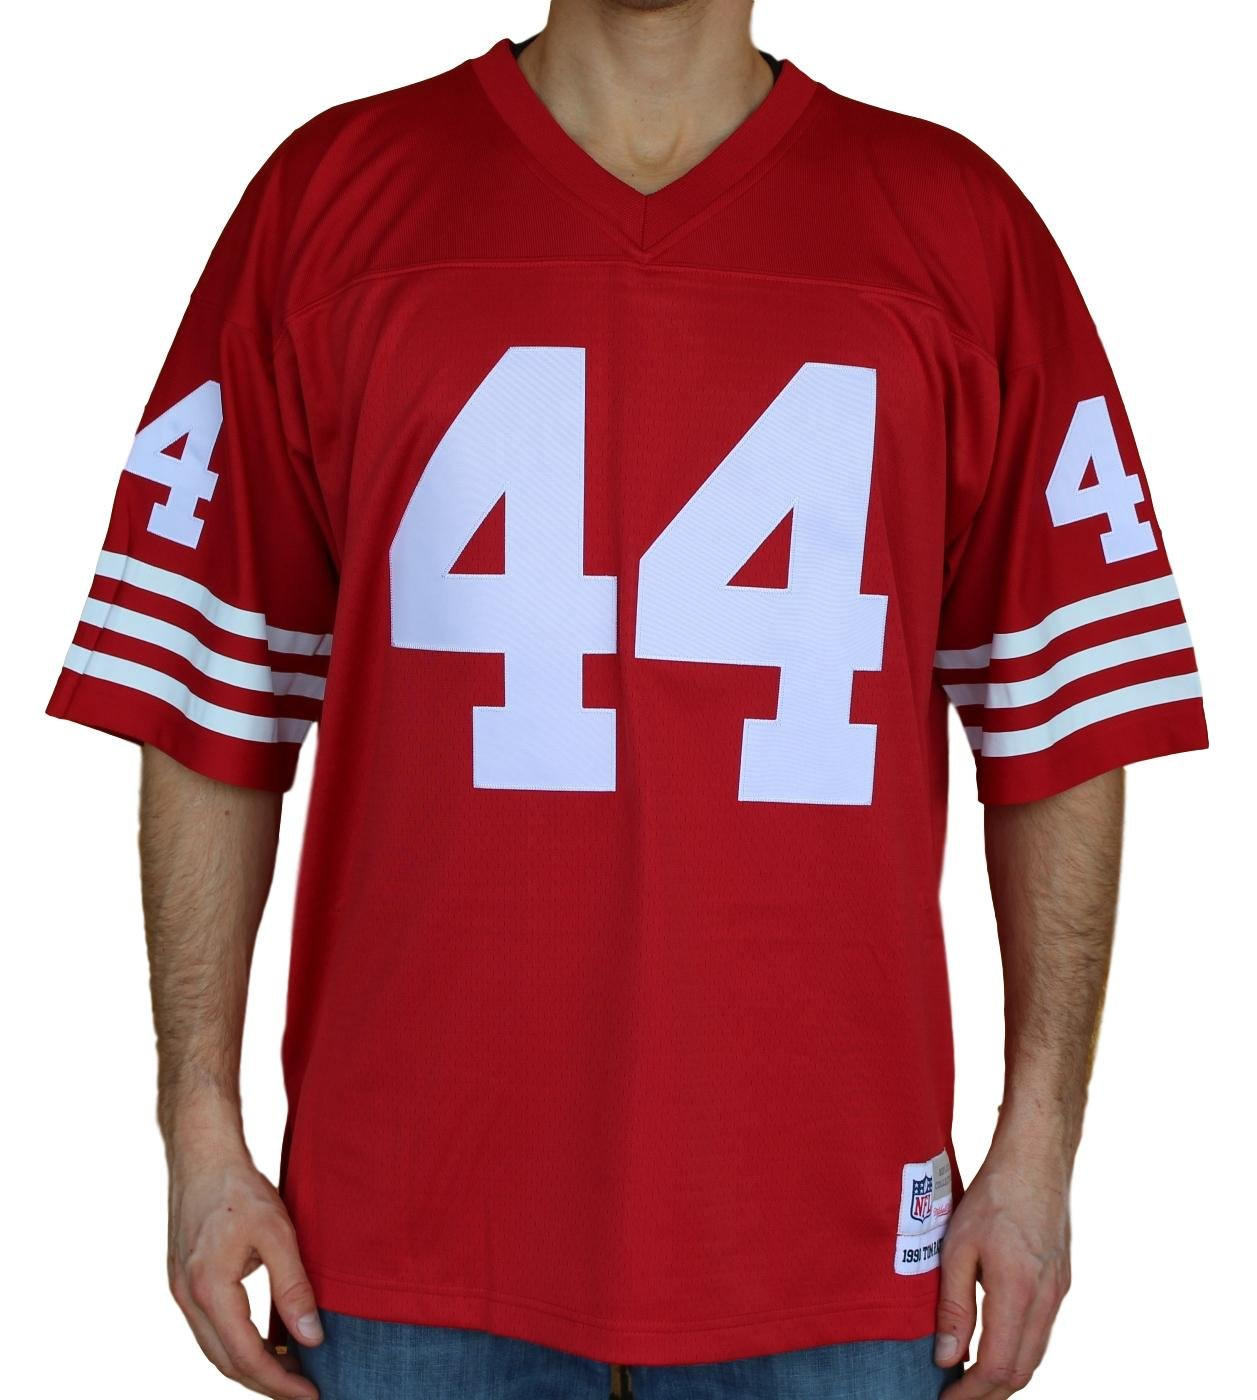 sneakers for cheap 7e6ef 5a774 Amazon.com : Mitchell & Ness Tom Rathman San Francisco 49ers ...